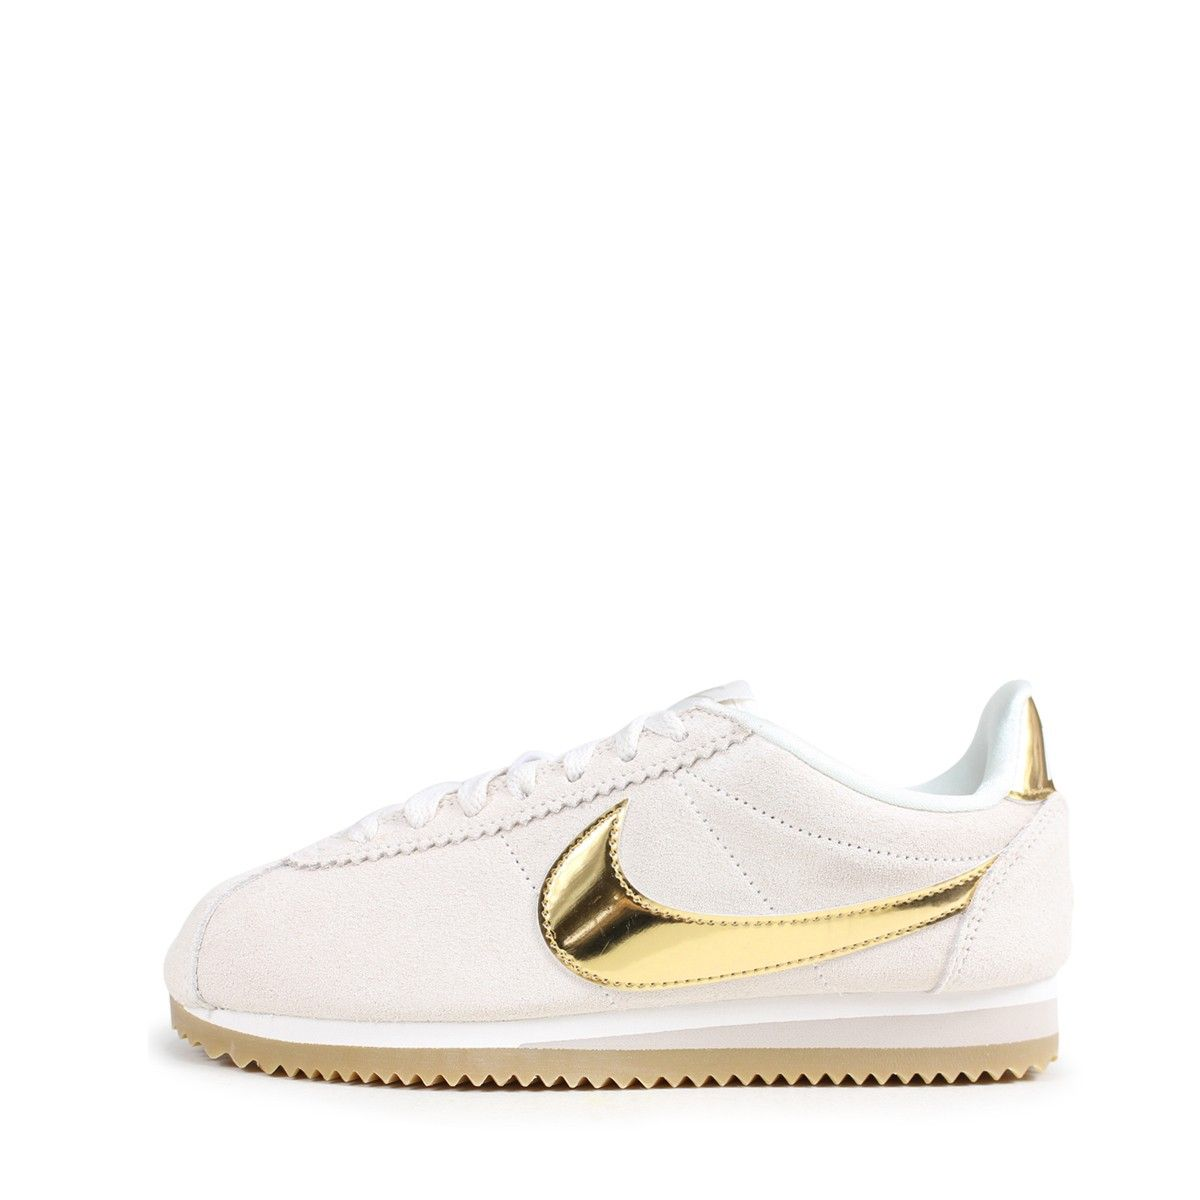 hot sale online c7c0e a07ee Baskets Nike W CORTEZ CLASSIC LEATHER - Ref. 902856-013. Loading zoom